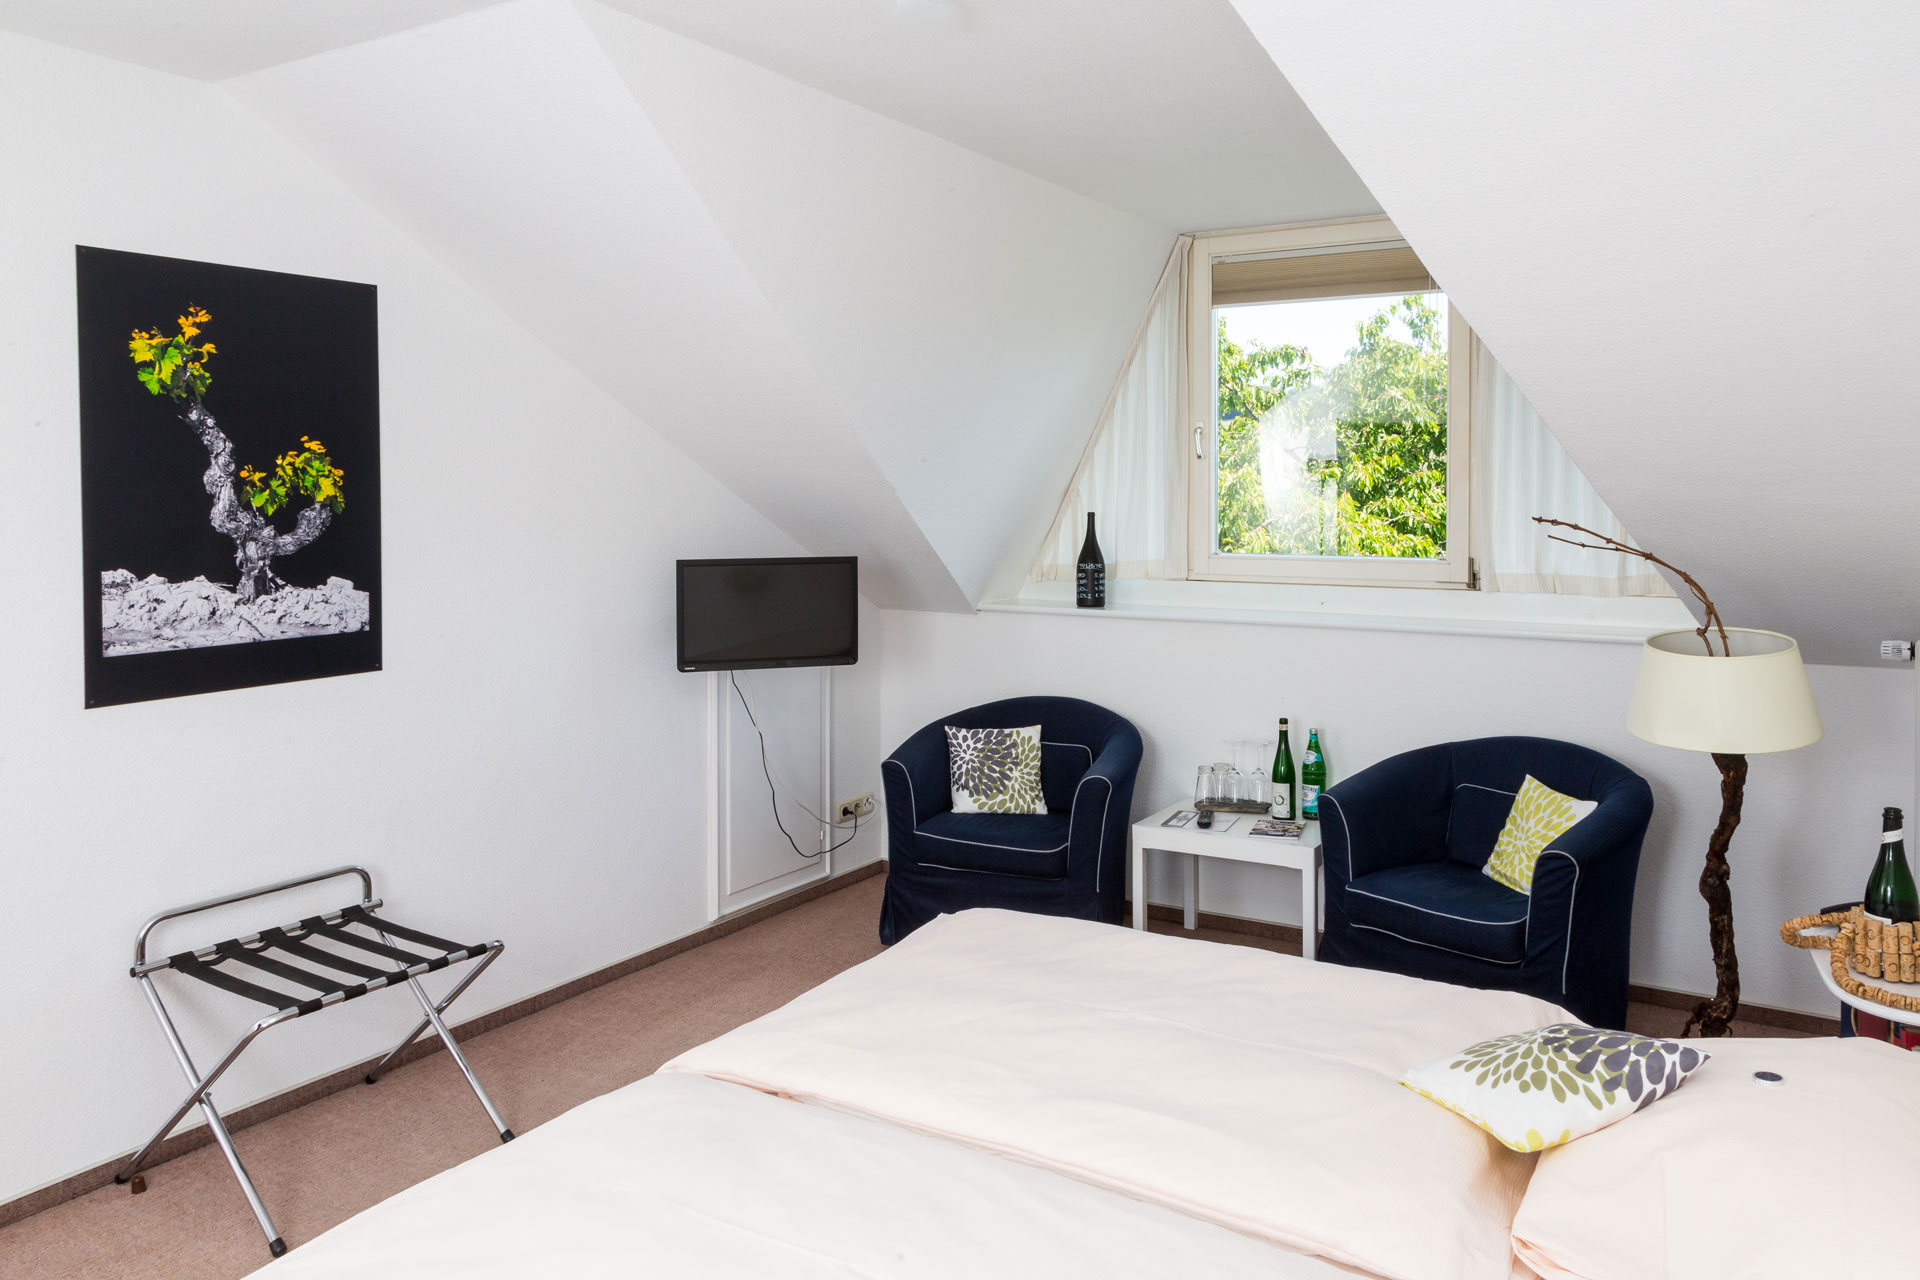 Attic room with bed and two armchairs